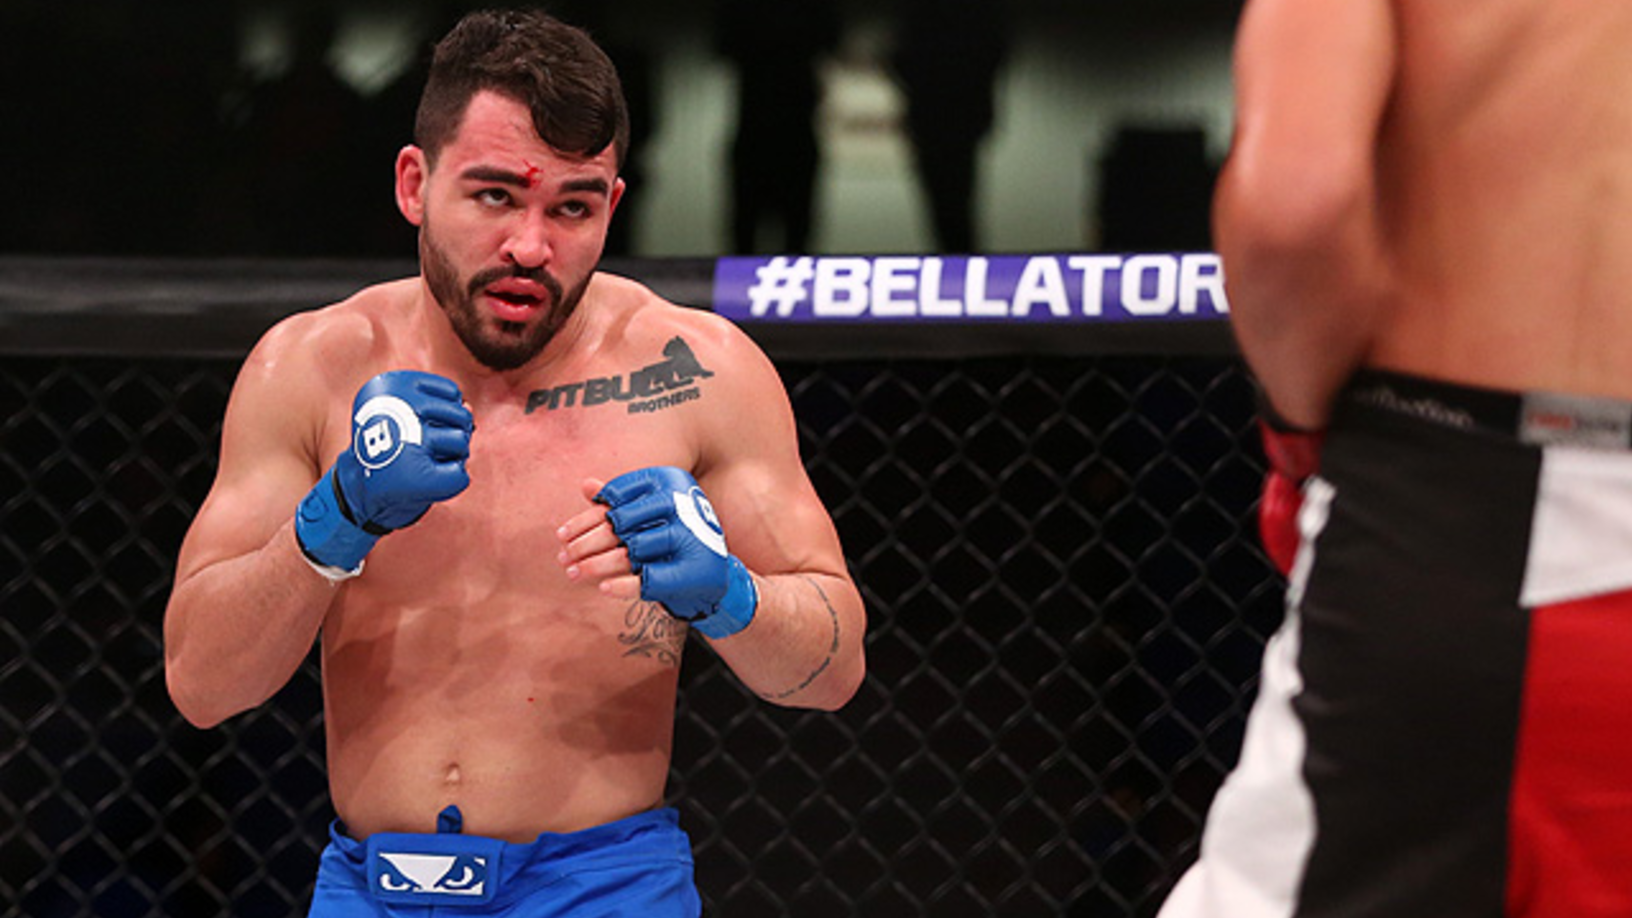 BELLATOR: Patricky Freire says he deserves a title shot over Michael Chandler - Freire